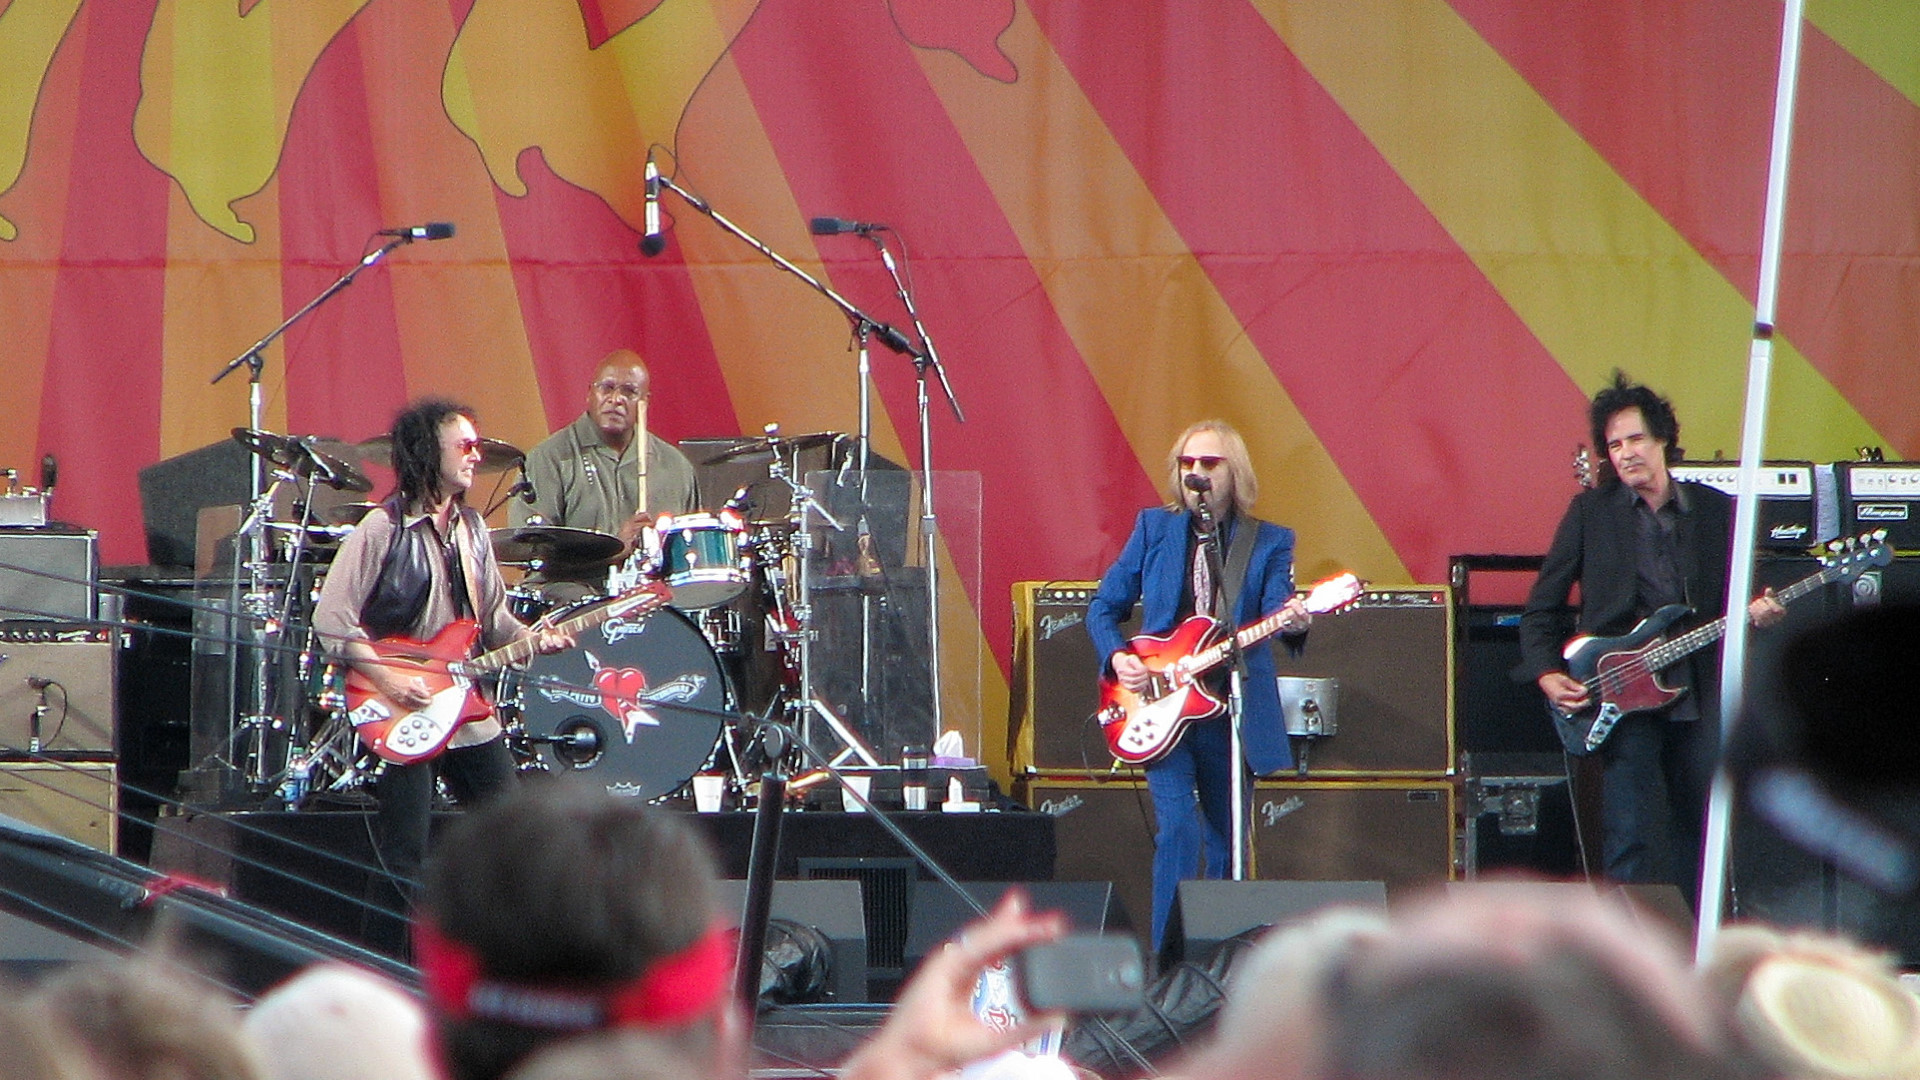 Mike Campbell, Steve Ferrone, Tom Petty, and Ron Blair